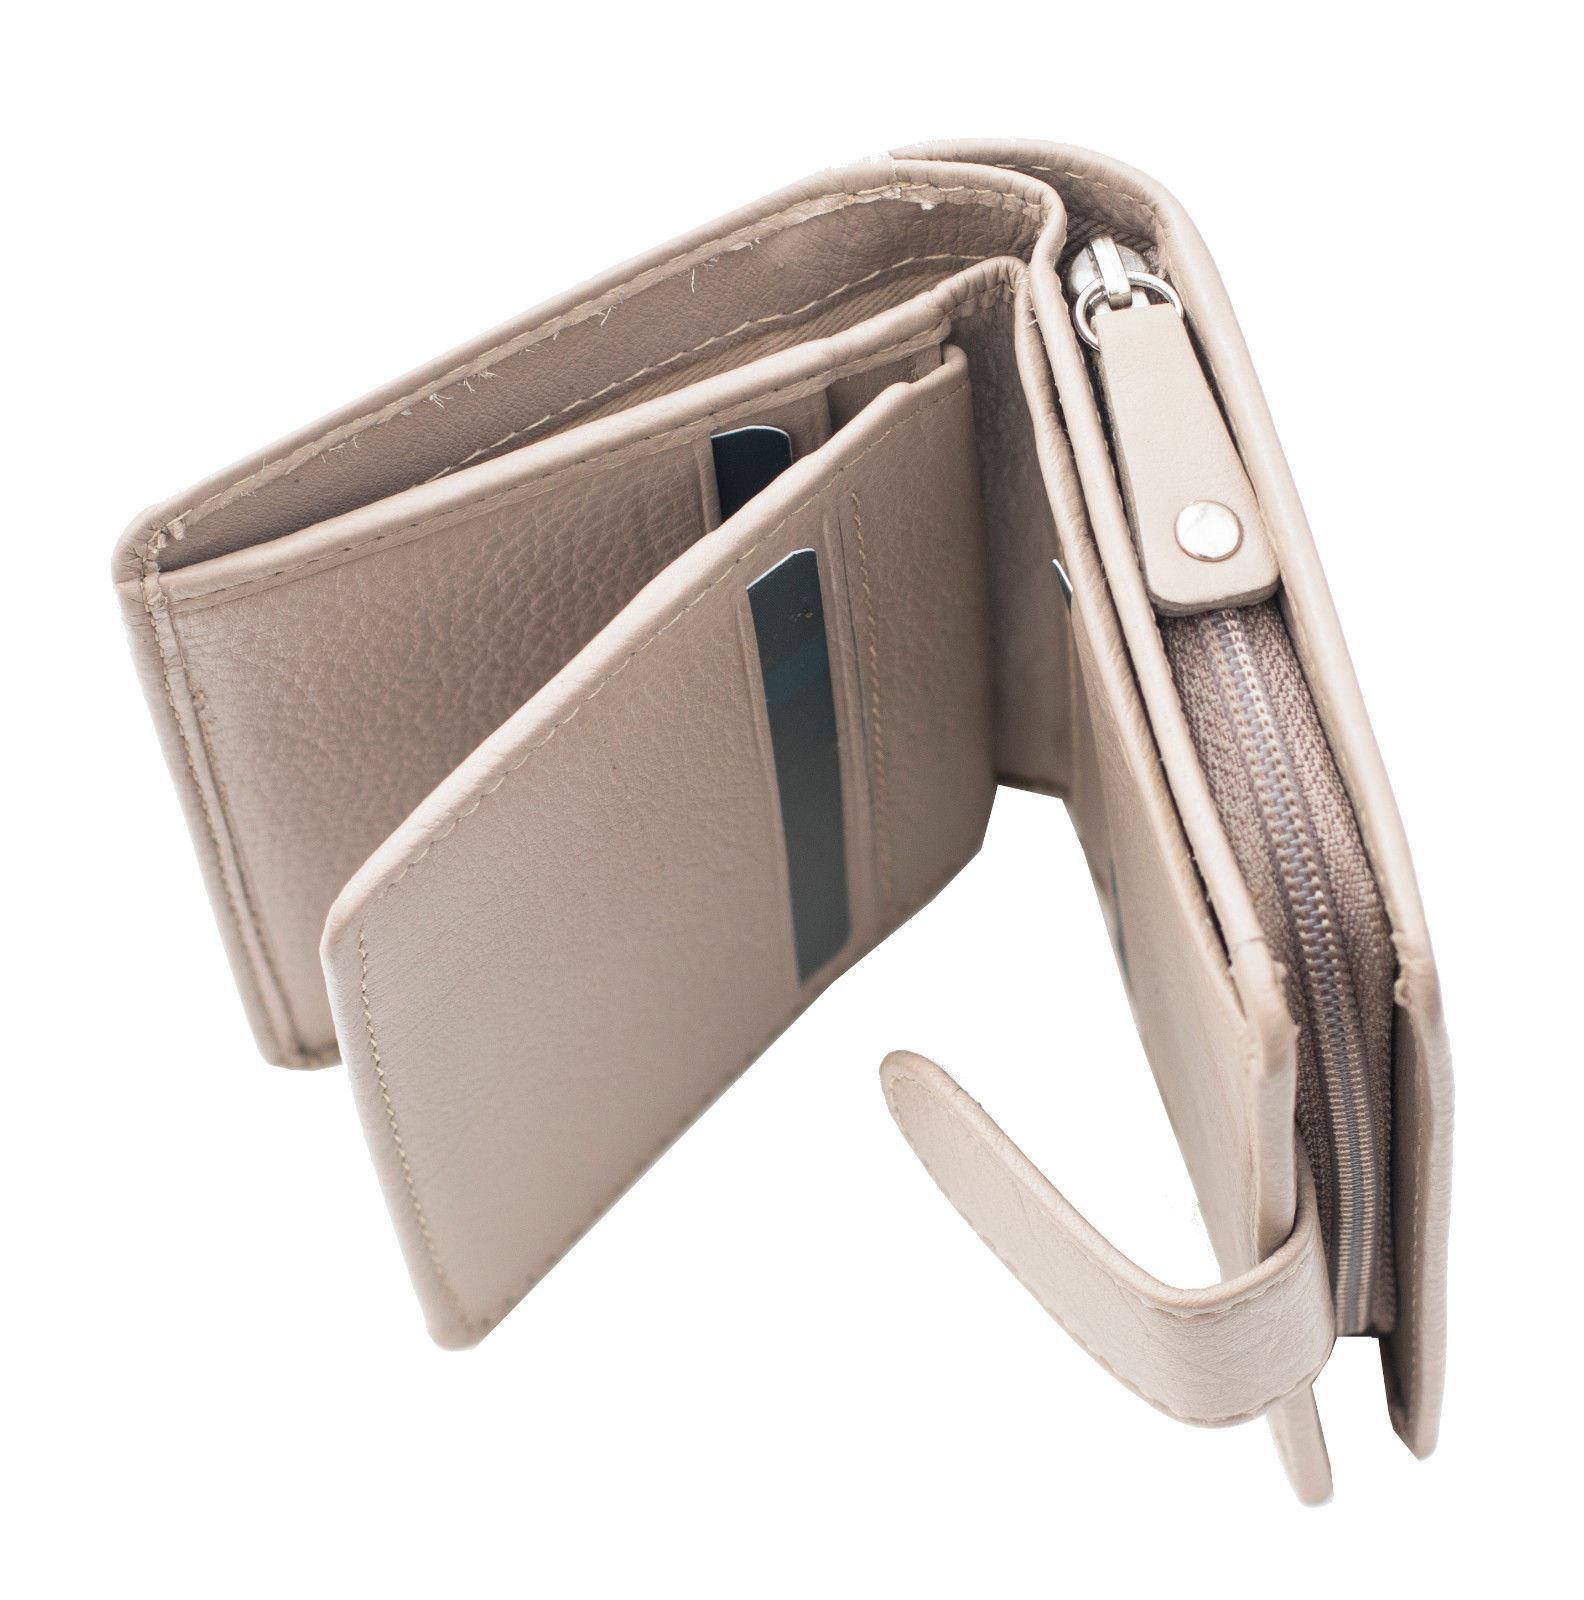 Prime Hide Windermere Women/'s Small Taupe Leather Purse Wallet New